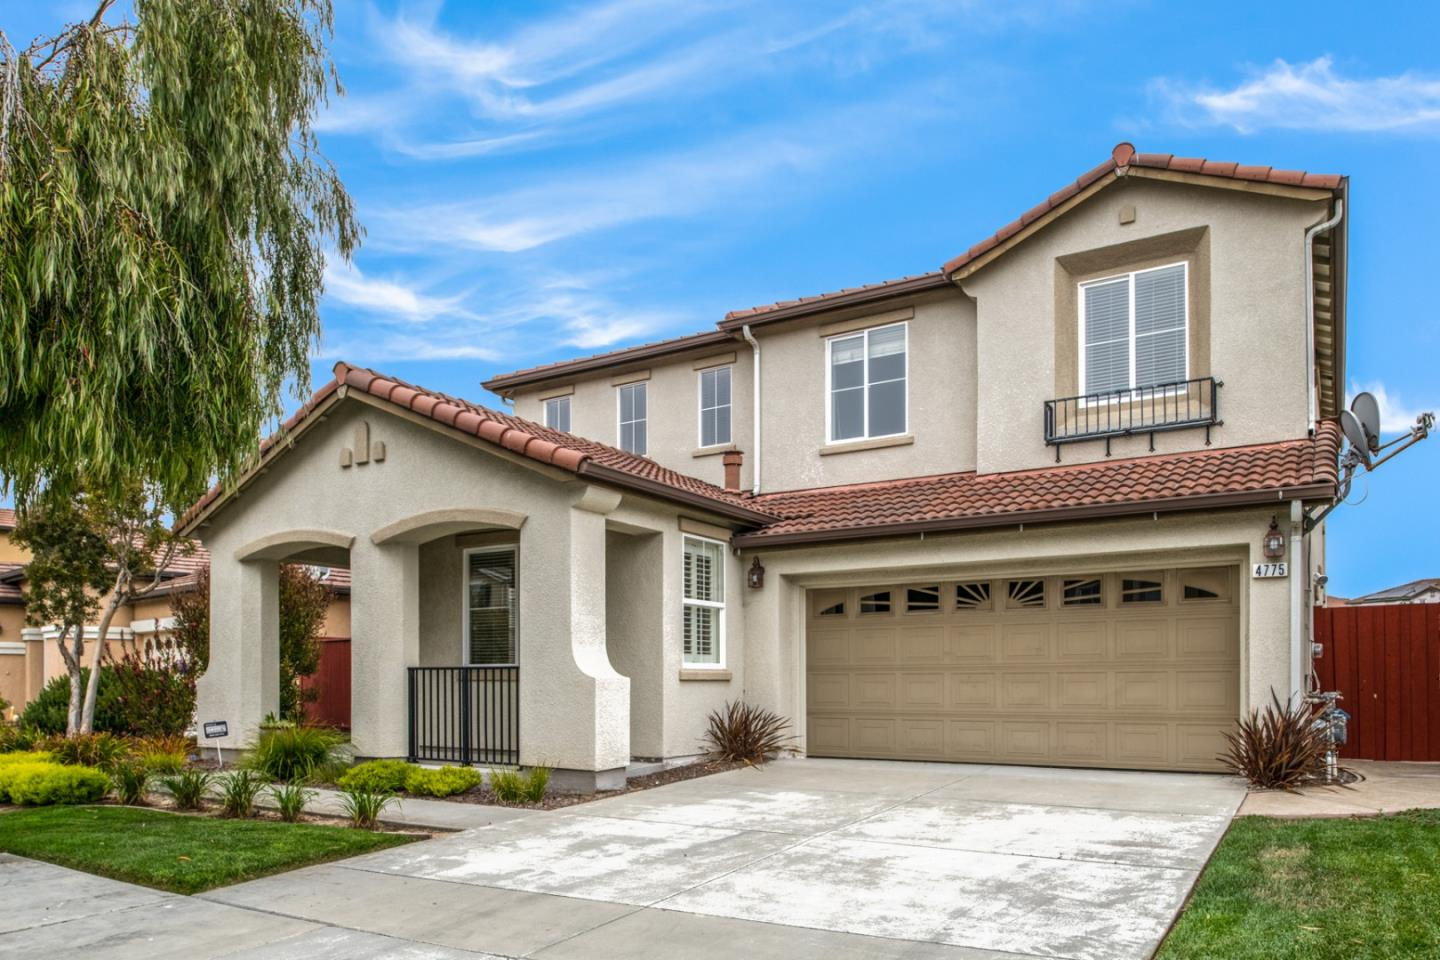 Photo of 4775 Sea Crest DR, SEASIDE, CA 93955